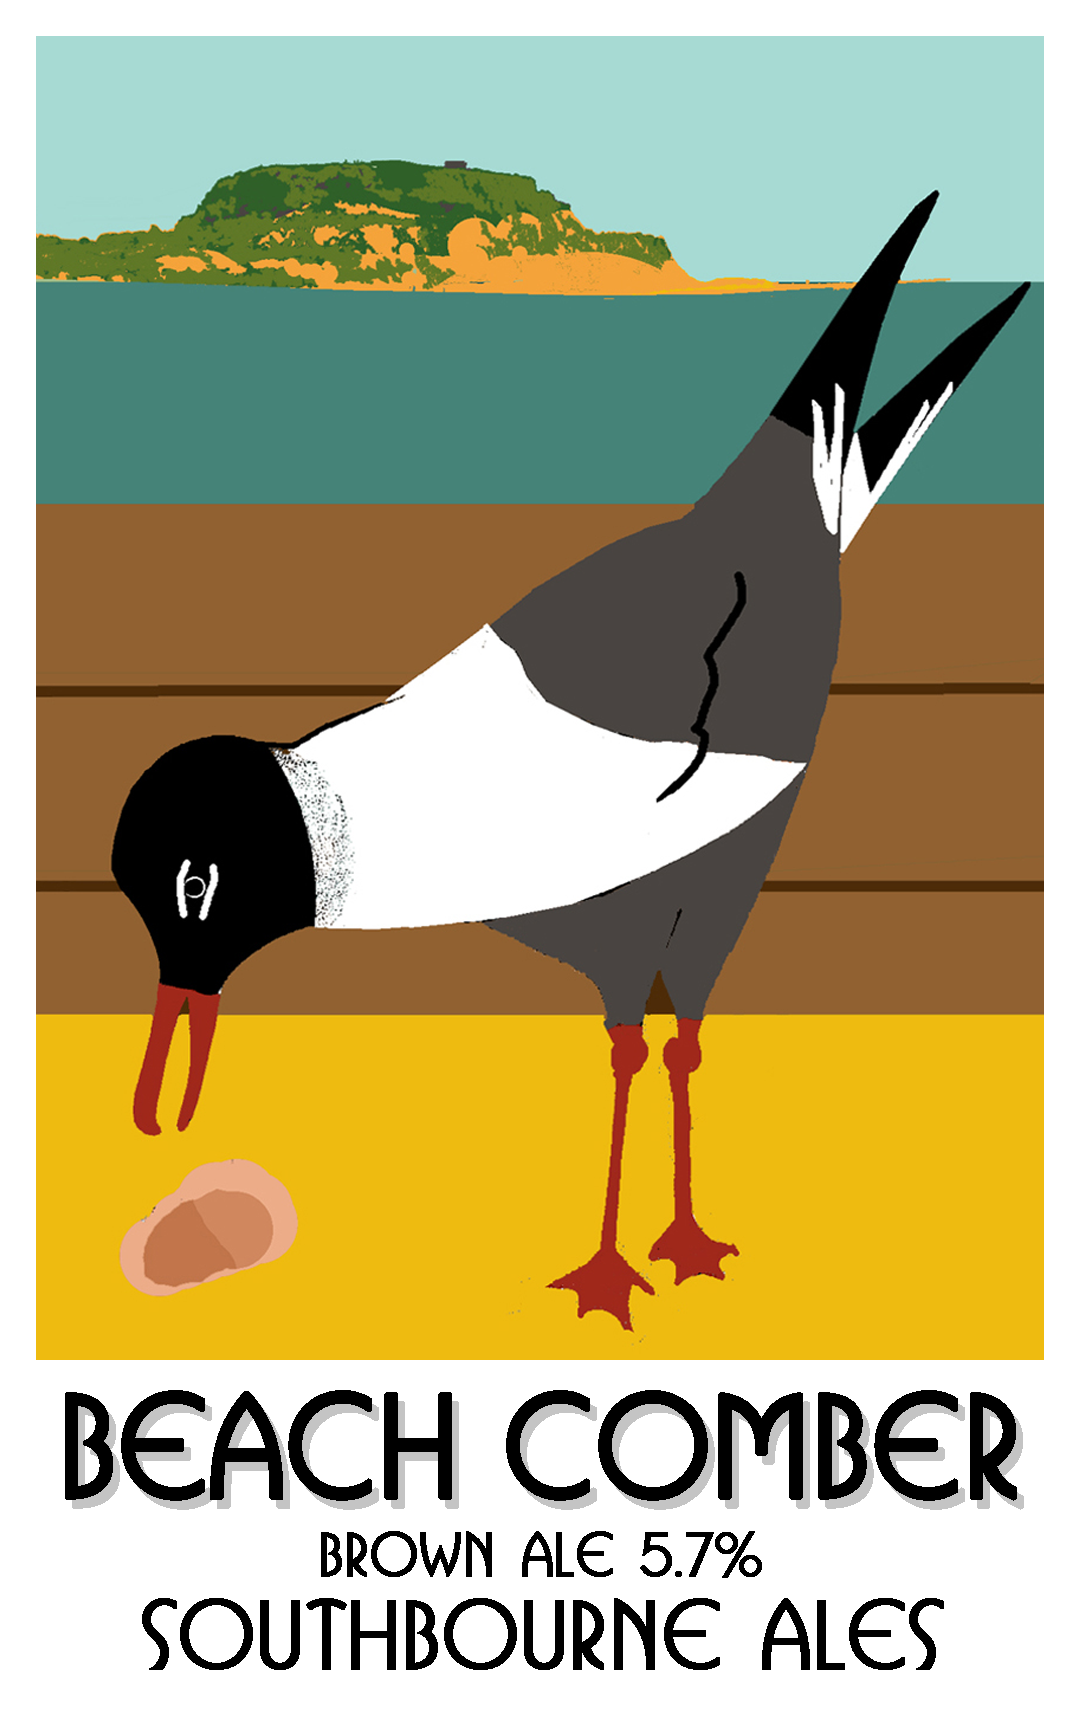 04-BeachComber-Label-SouthbourneAles copy.png